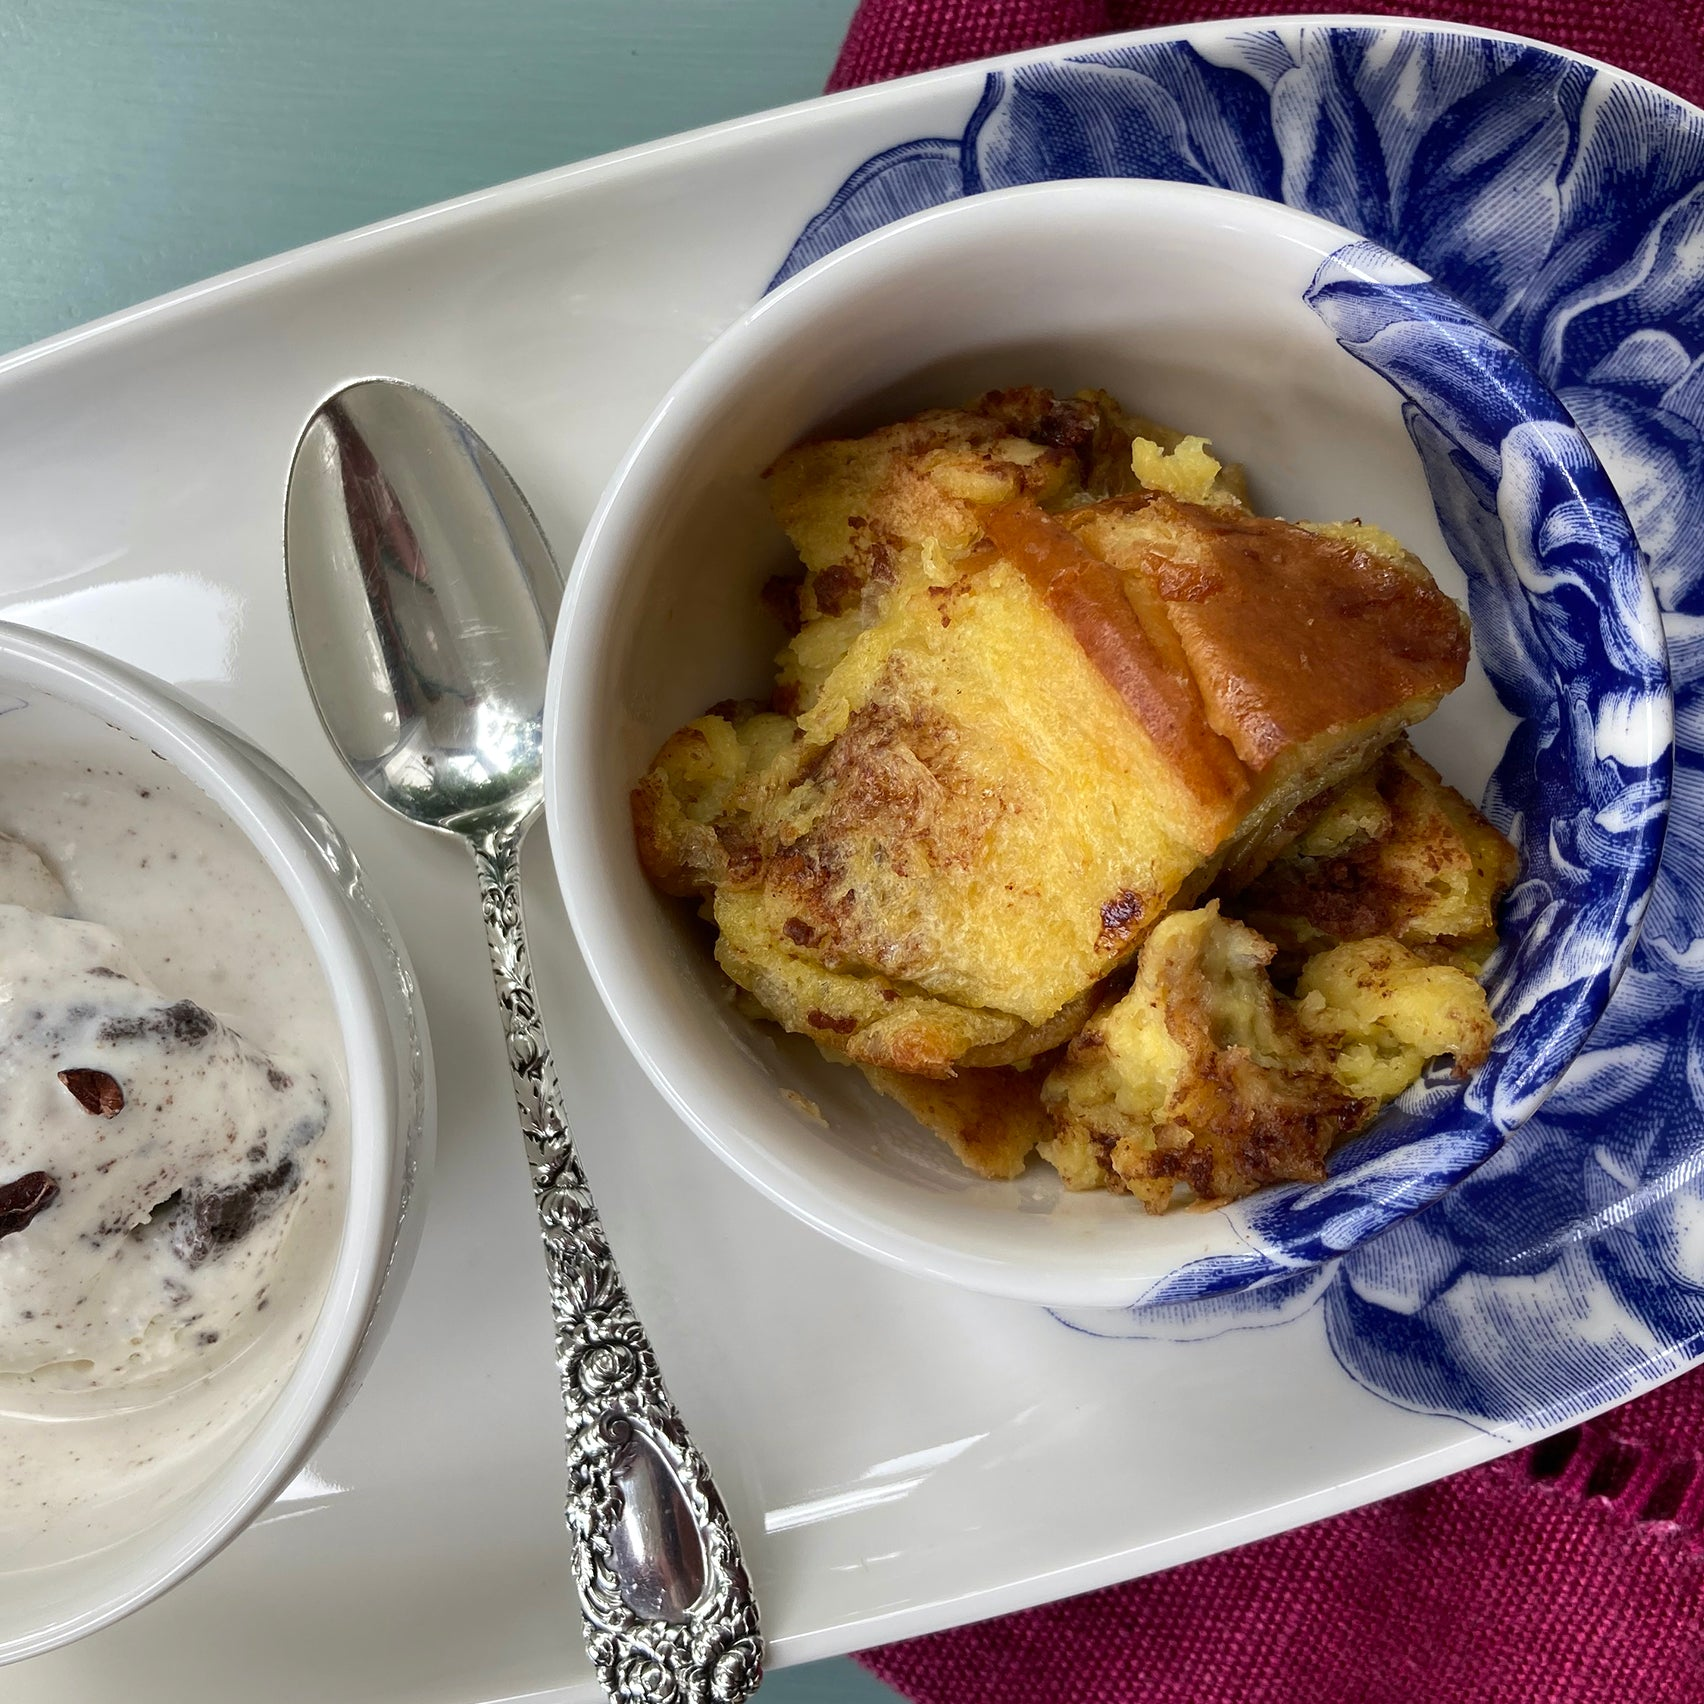 bread pudding recipe and Caskata peony snack bowl and Caskata peony small oval platter